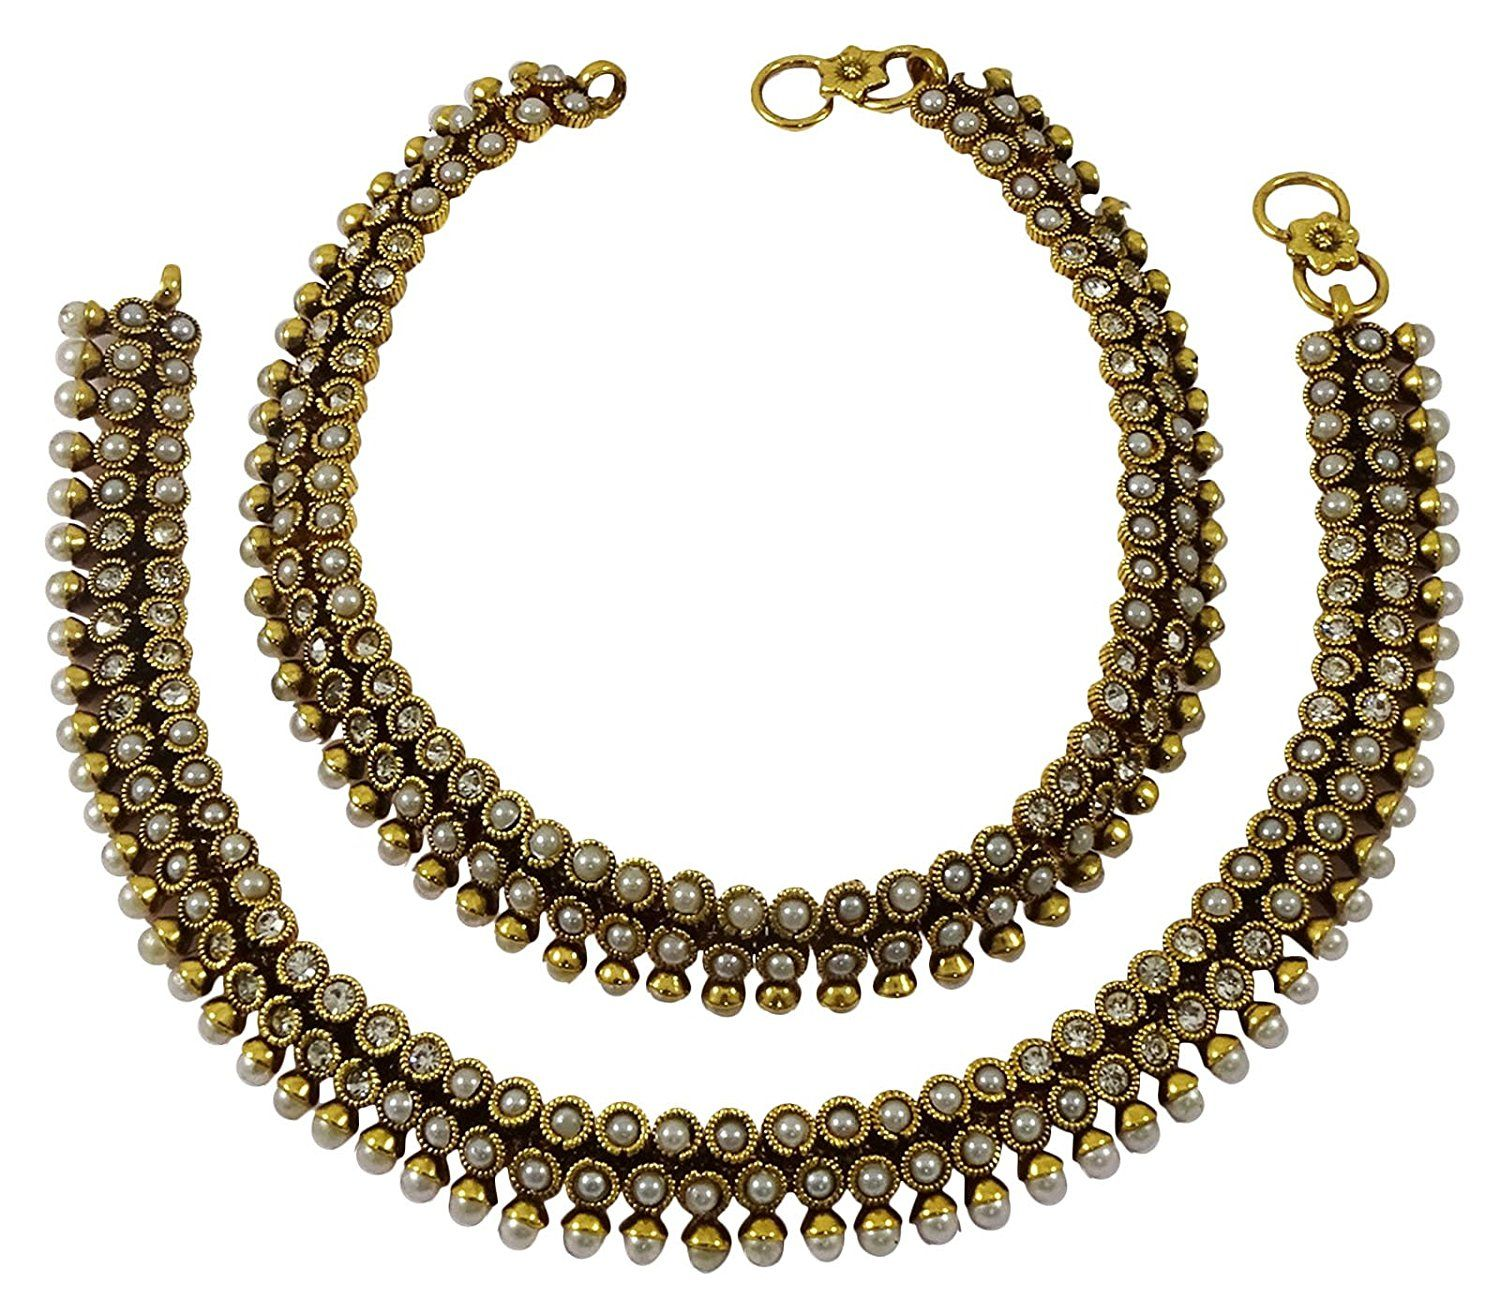 Goldtone Traditional Ethnic Bollywood Style Anklet Set Foot Payal Jewellery Engagement & Wedding Bridal & Wedding Party Jewelry